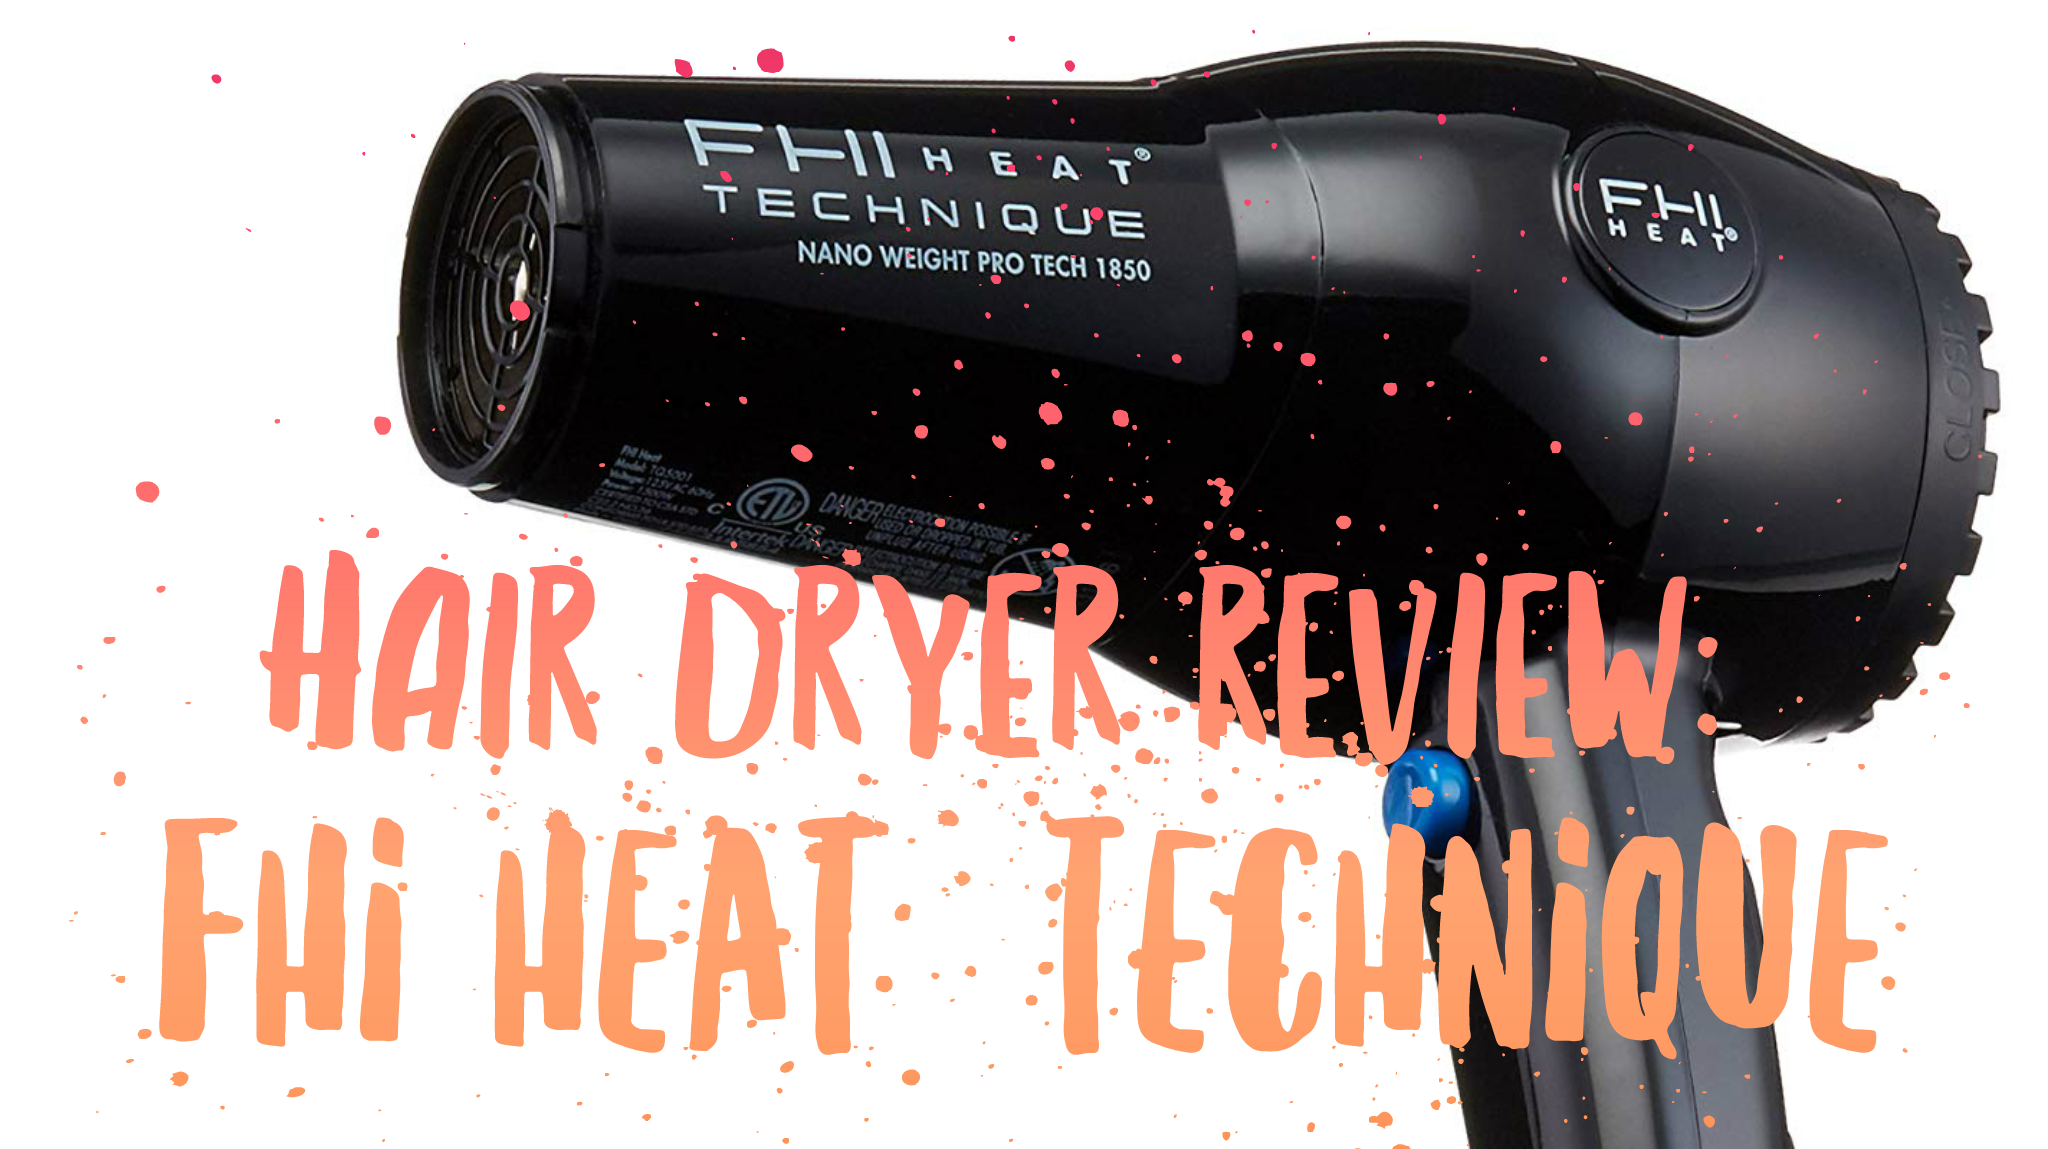 FHI Heat Technique Hair Dryer Review